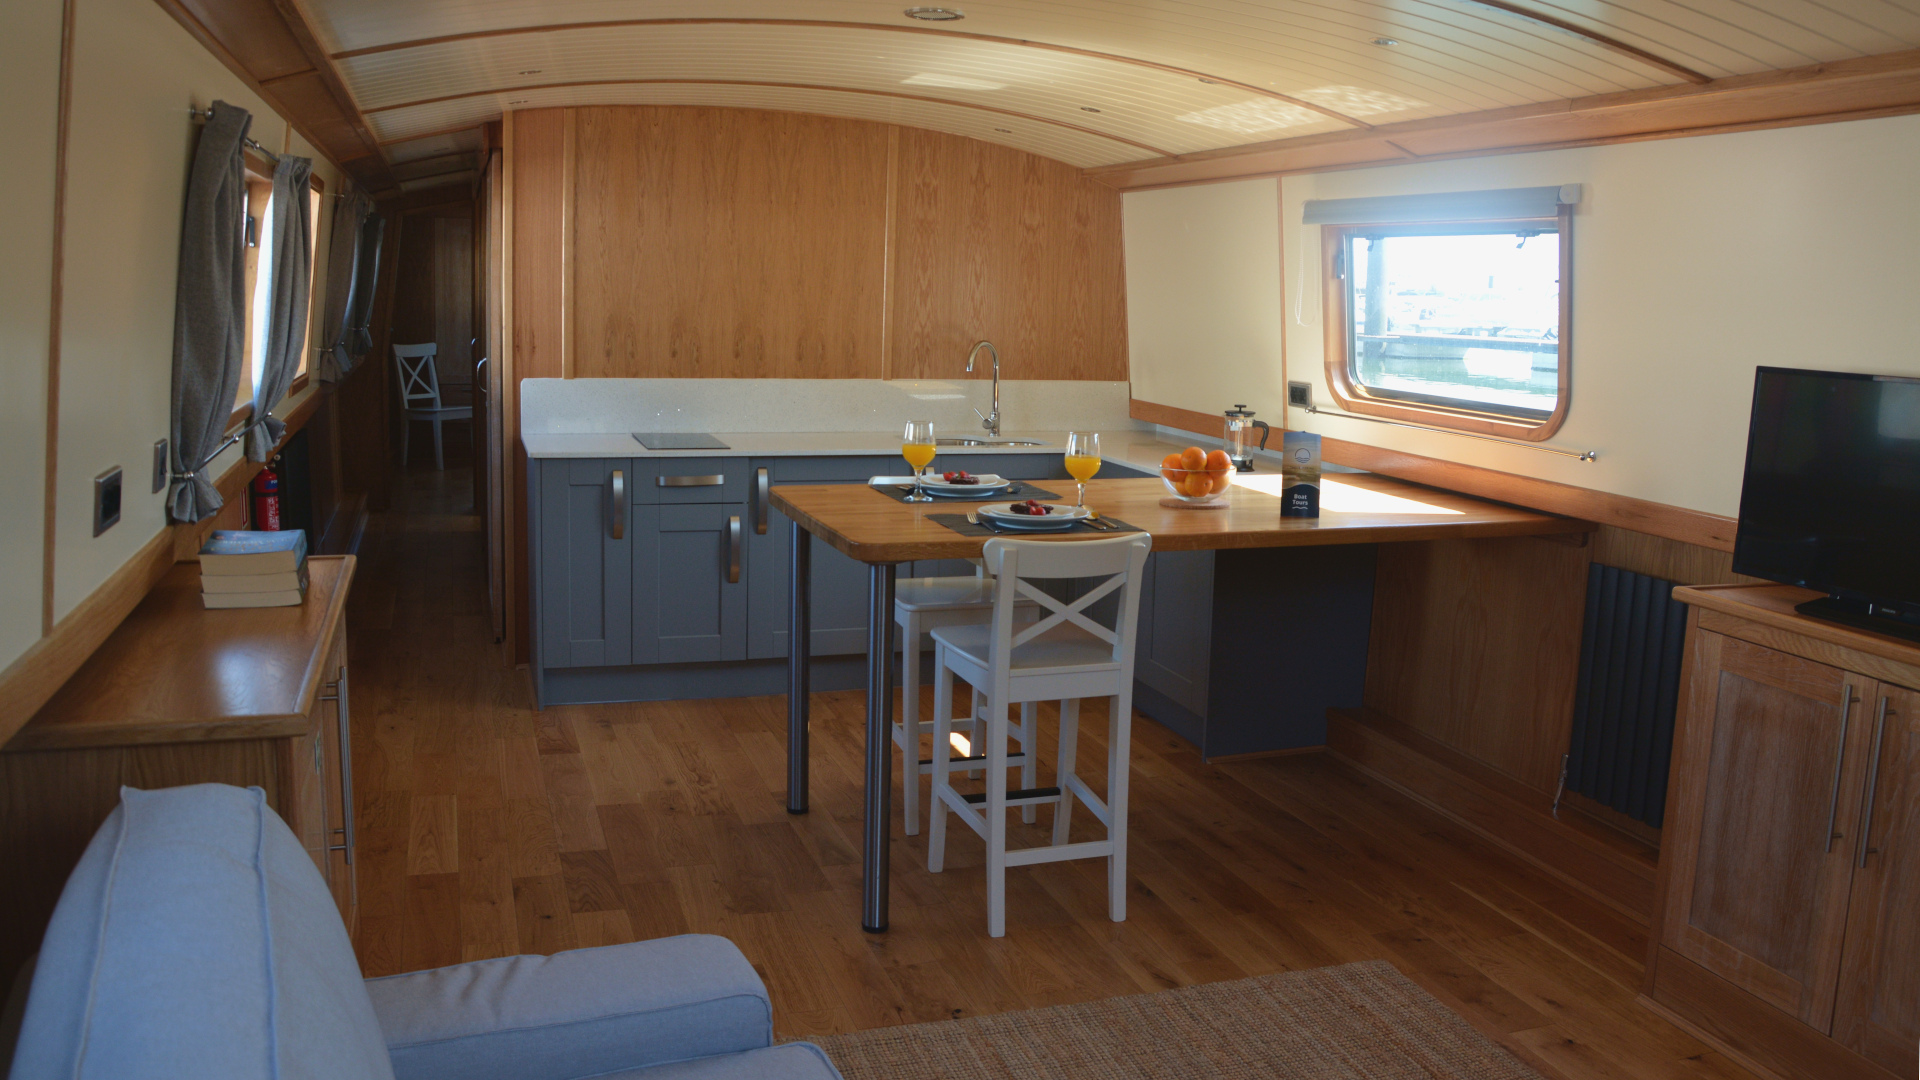 Widebeam - kitchenette and living room